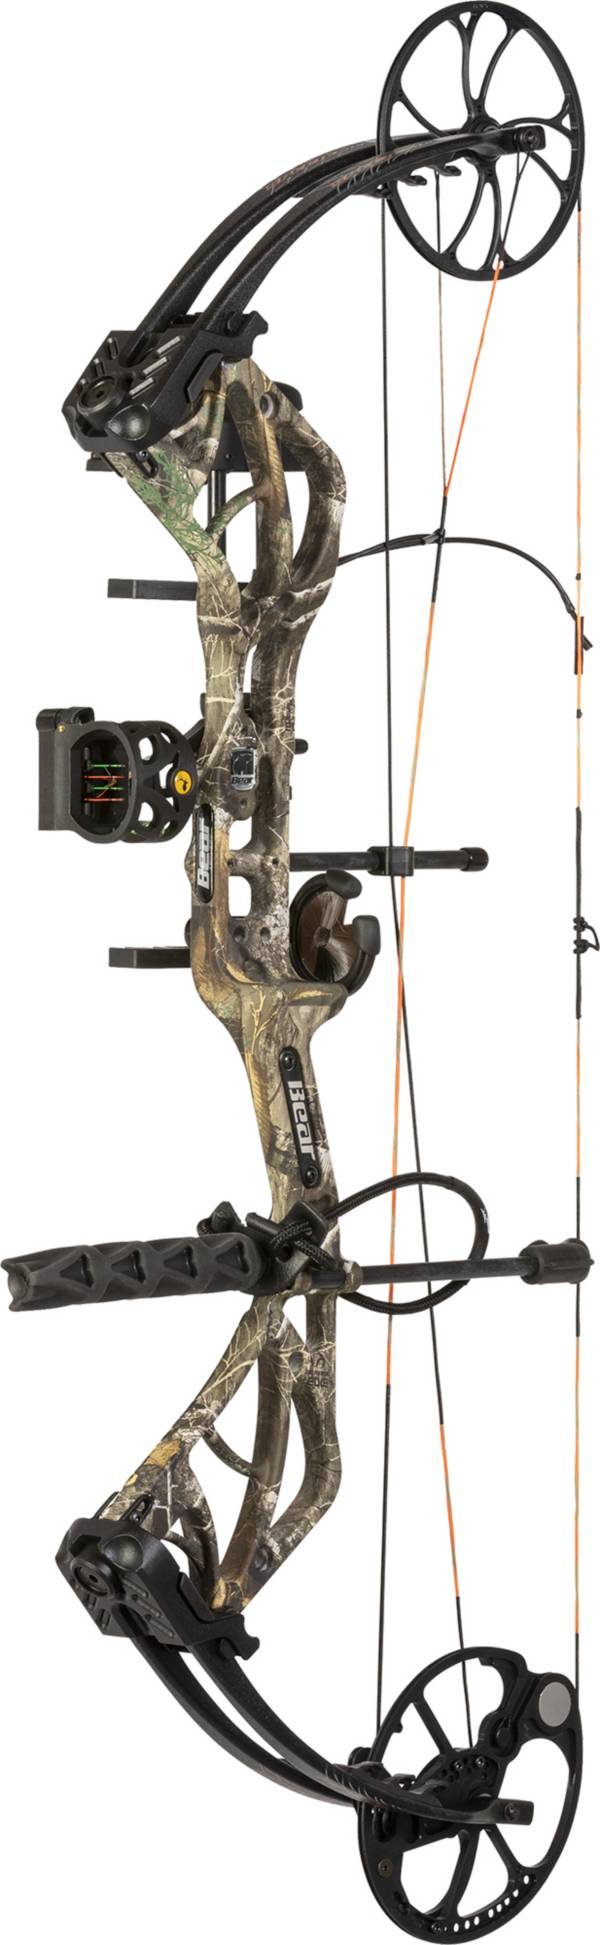 Bear Archery Species LD RTH Compound Bow Package product image